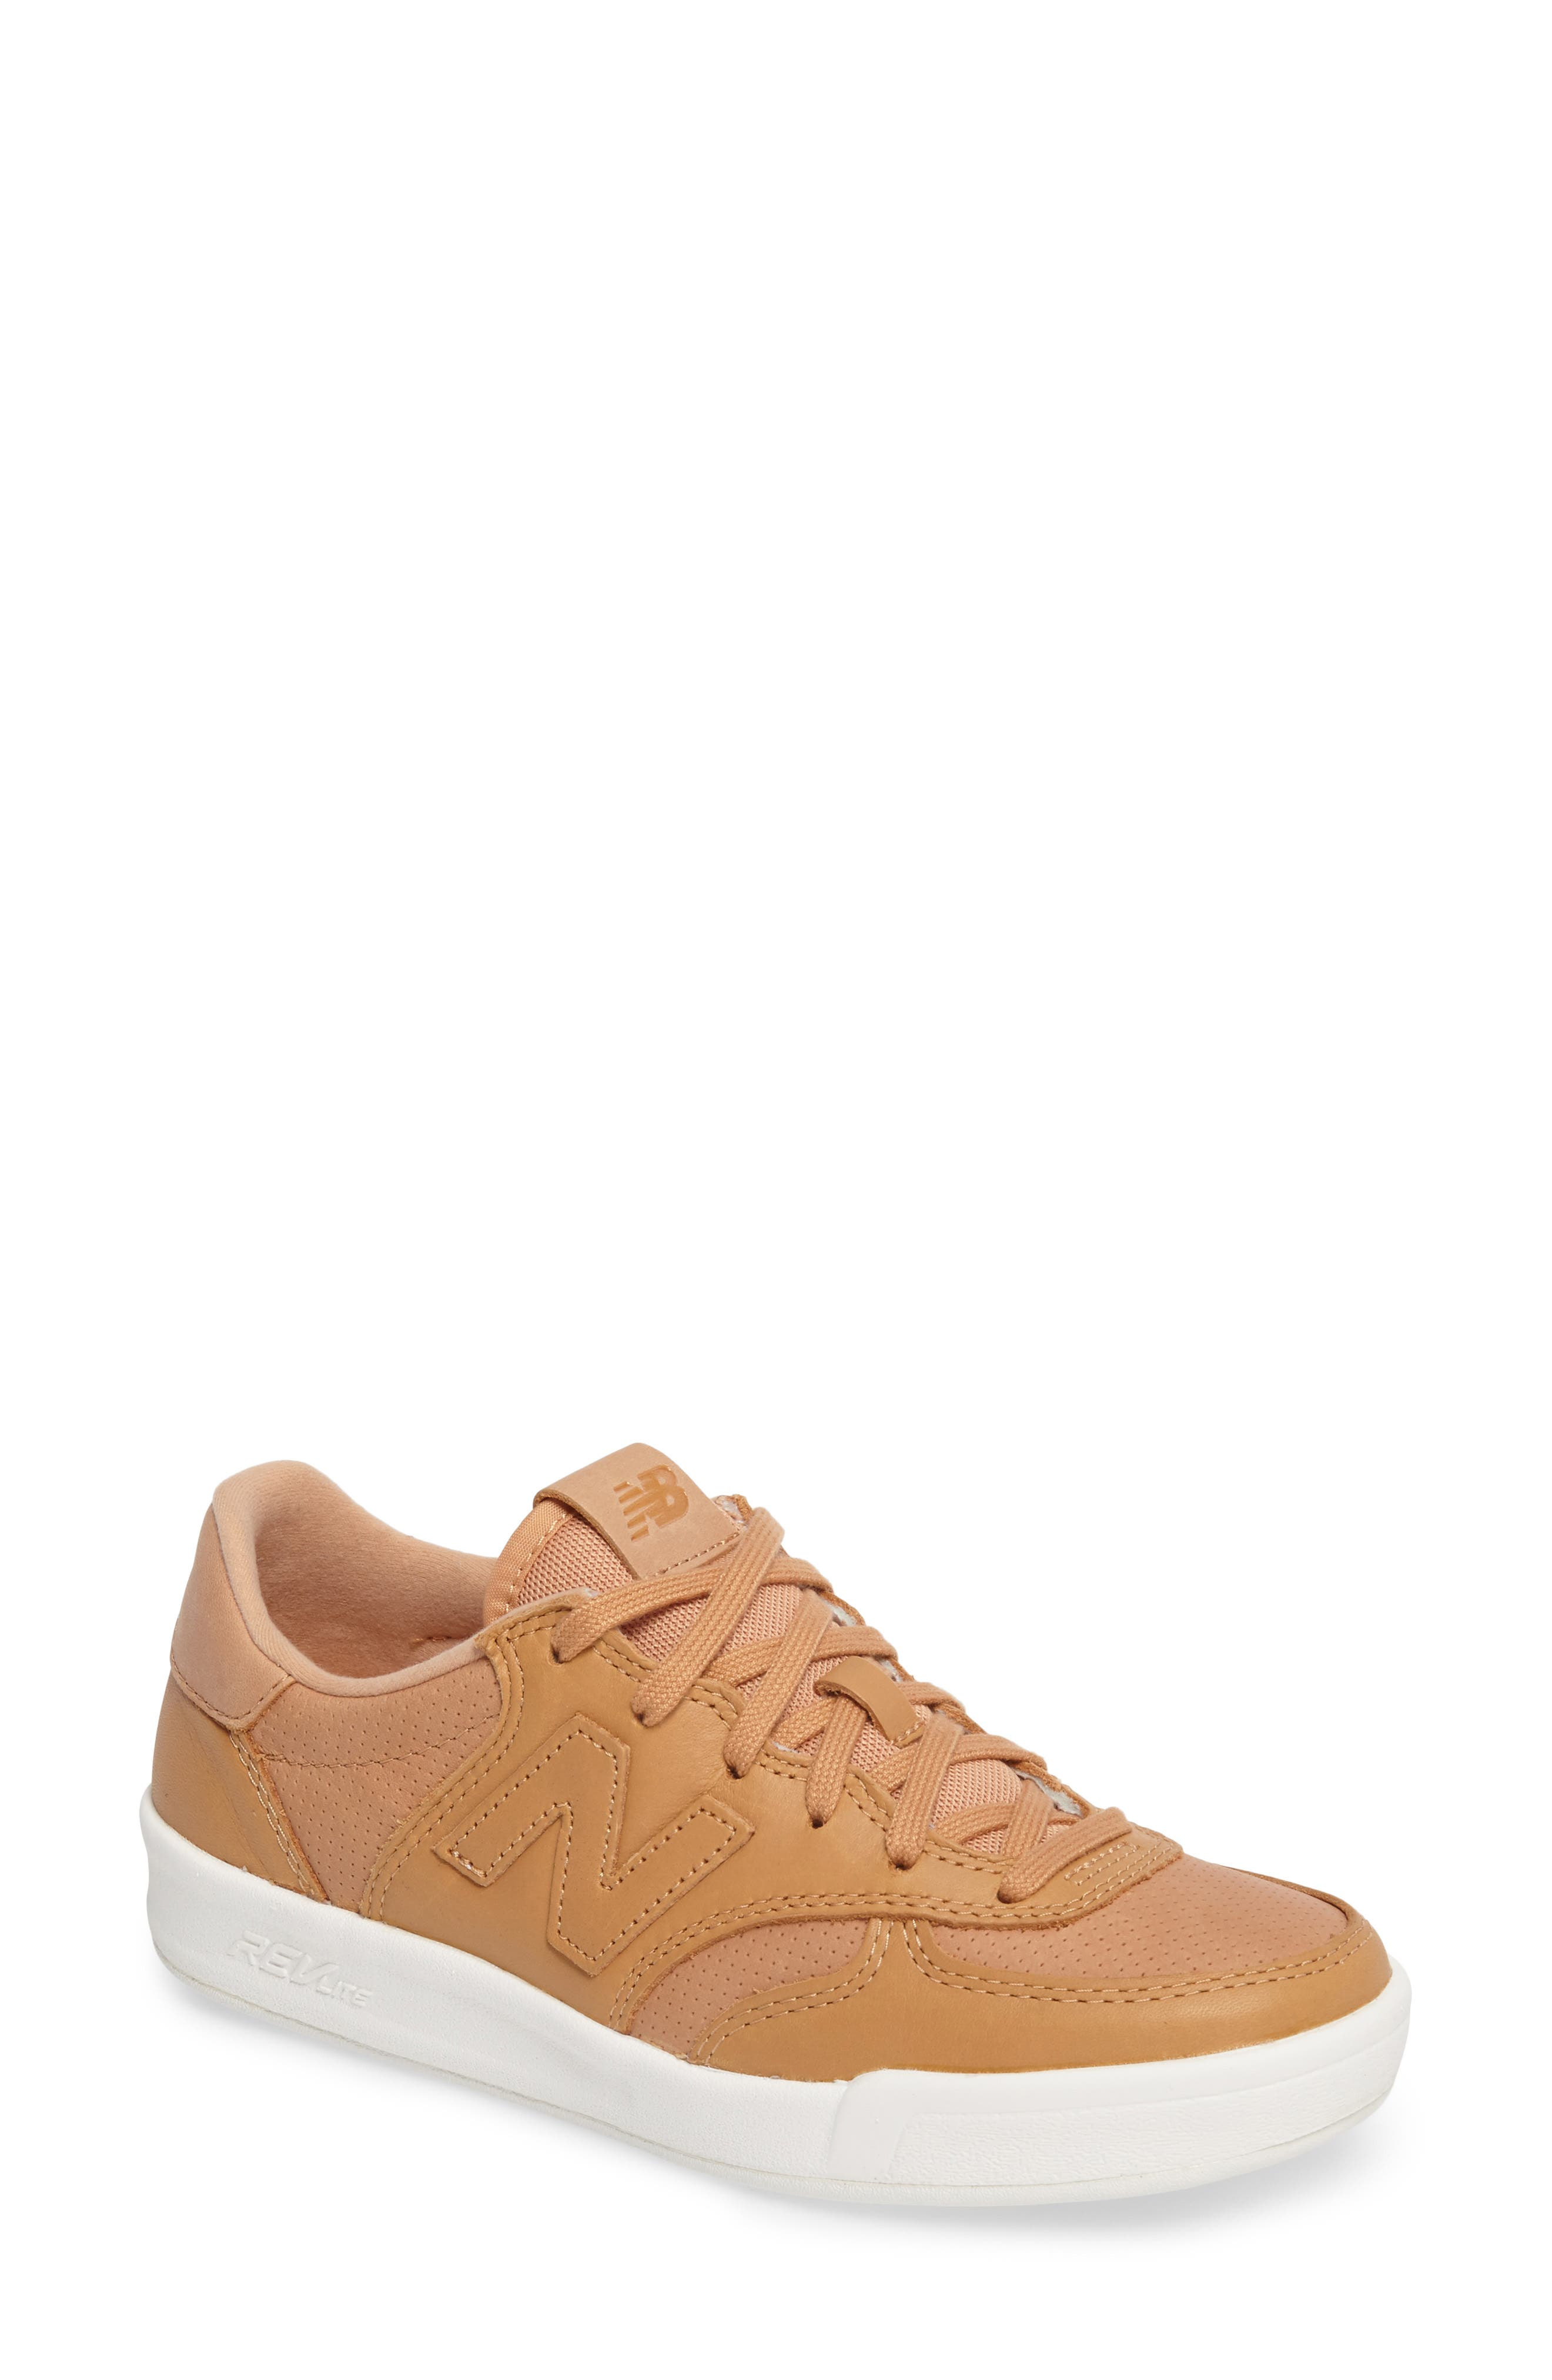 300 Sneaker,                         Main,                         color, Toast